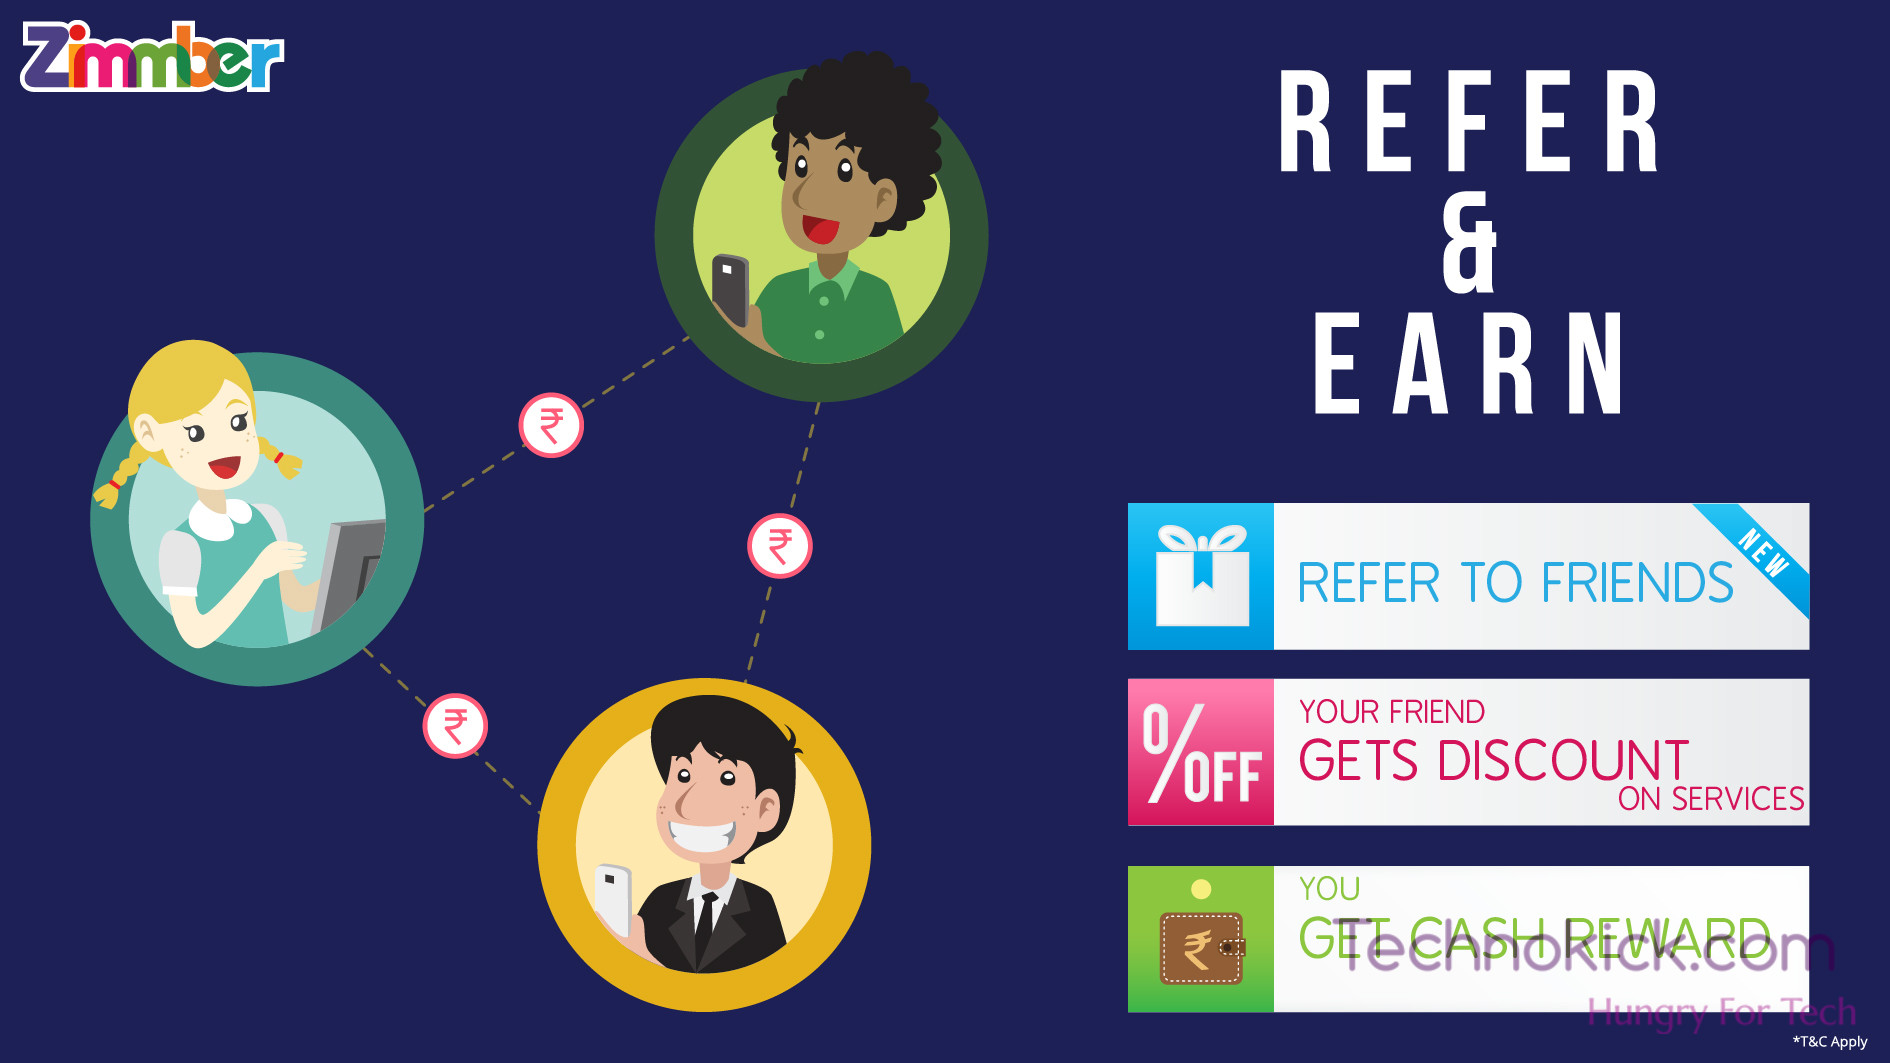 Refer & Earn-01 (2)